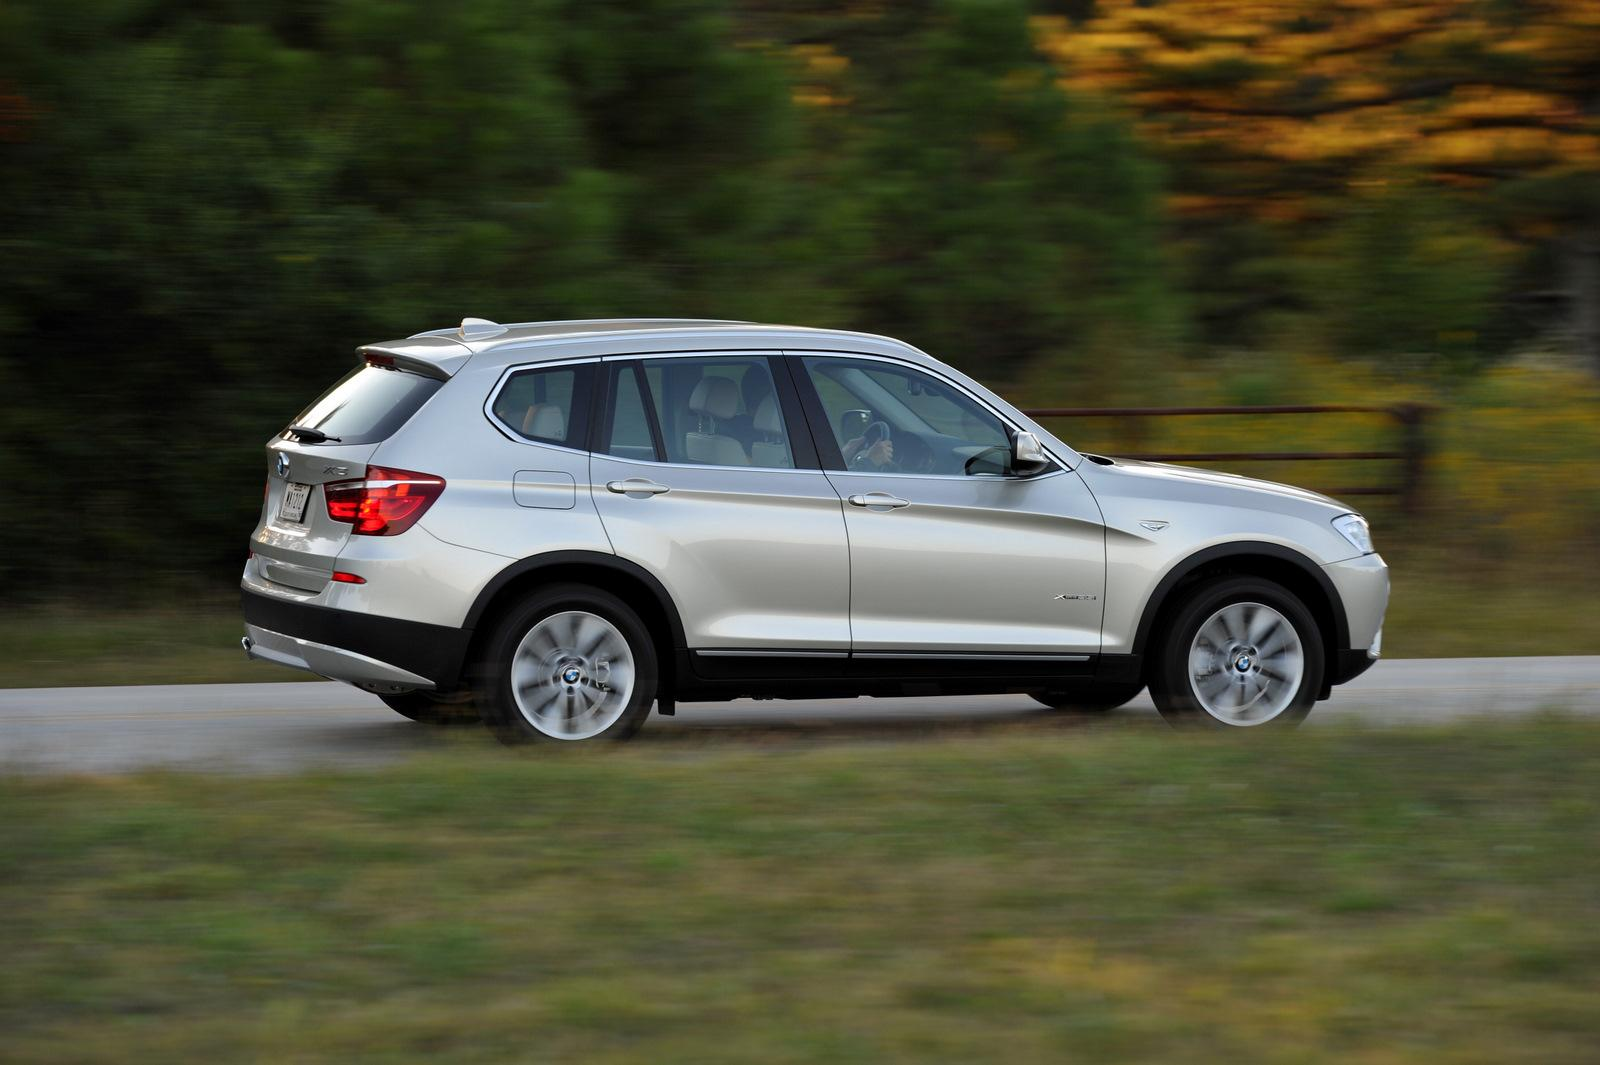 BMW X3 sDrive18d 2011 photo - 4